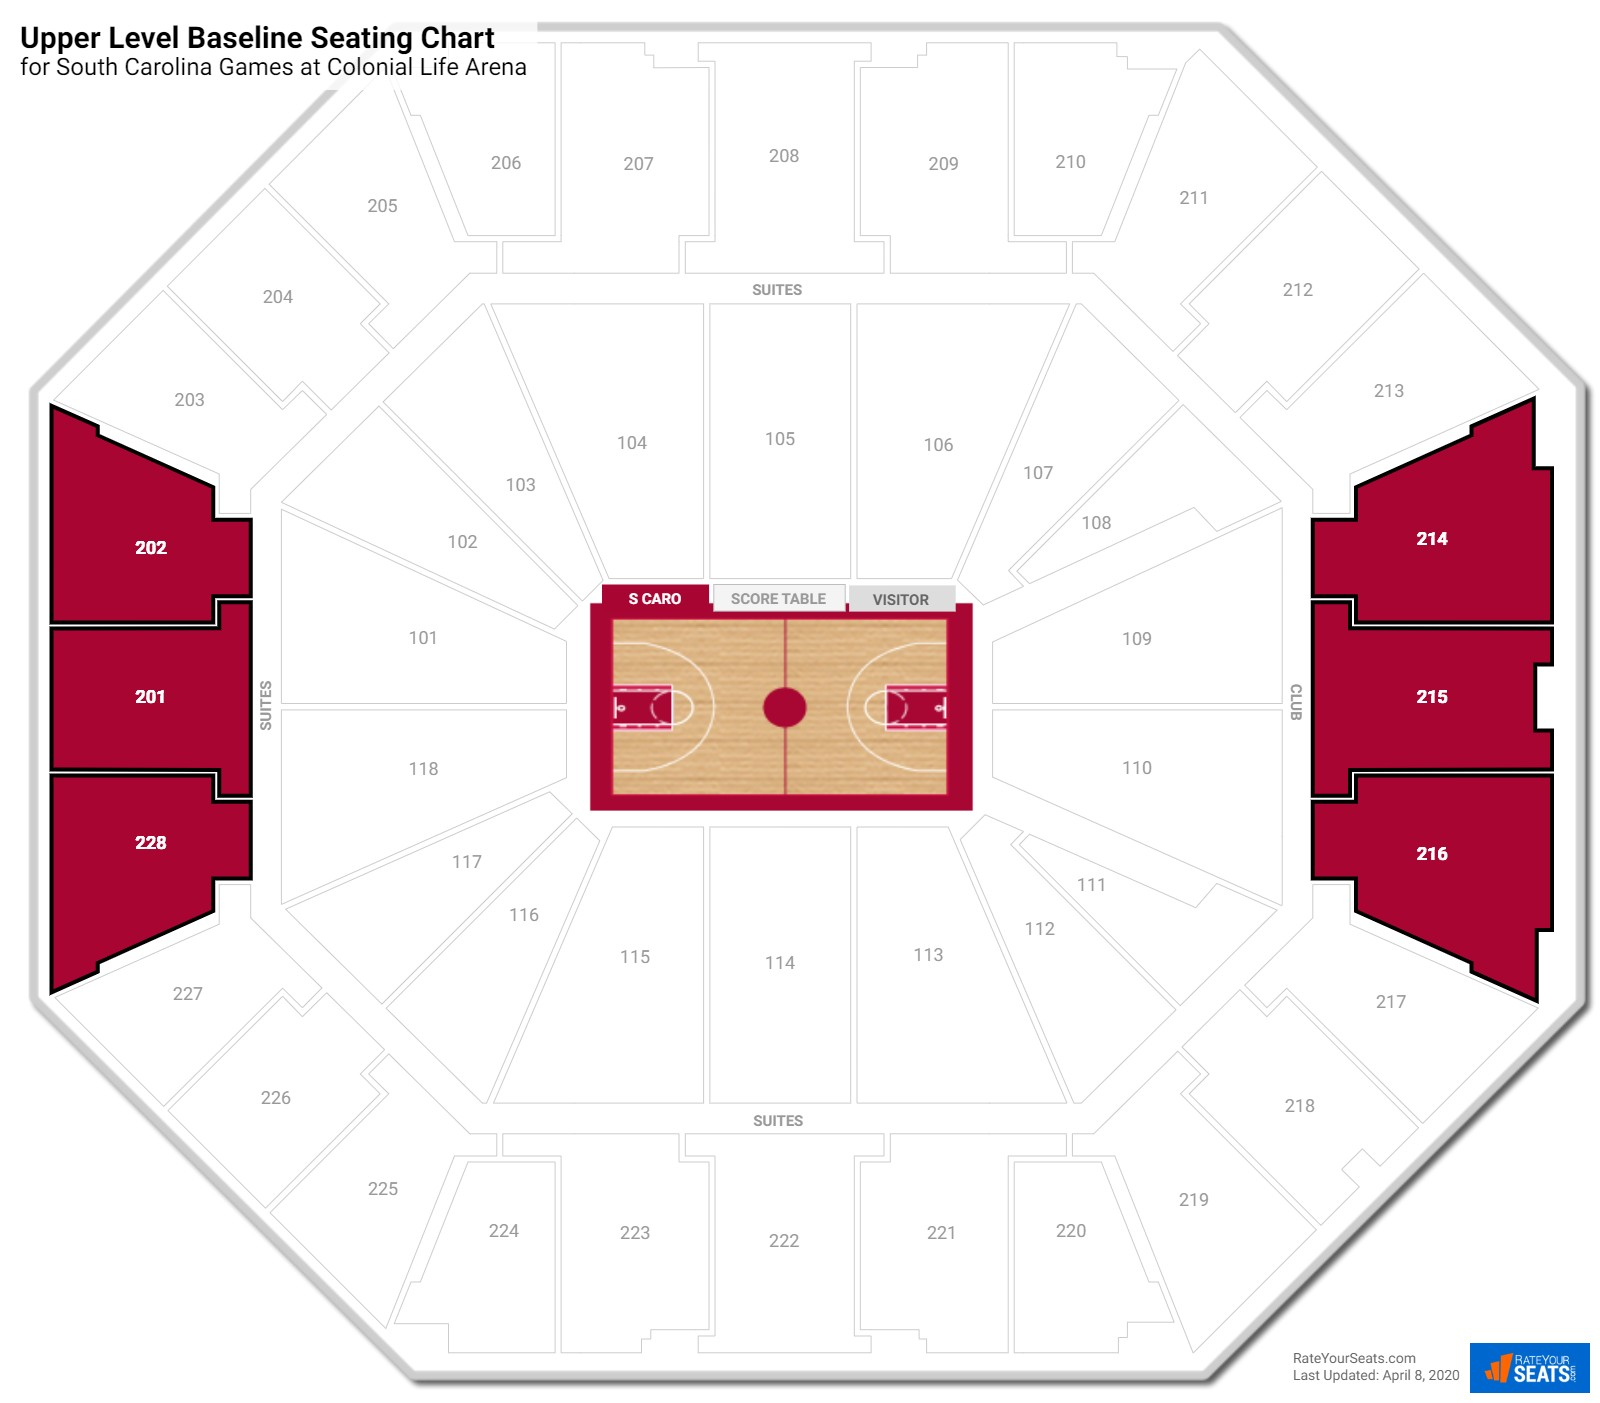 Colonial Life Arena Upper Level Baseline seating chart